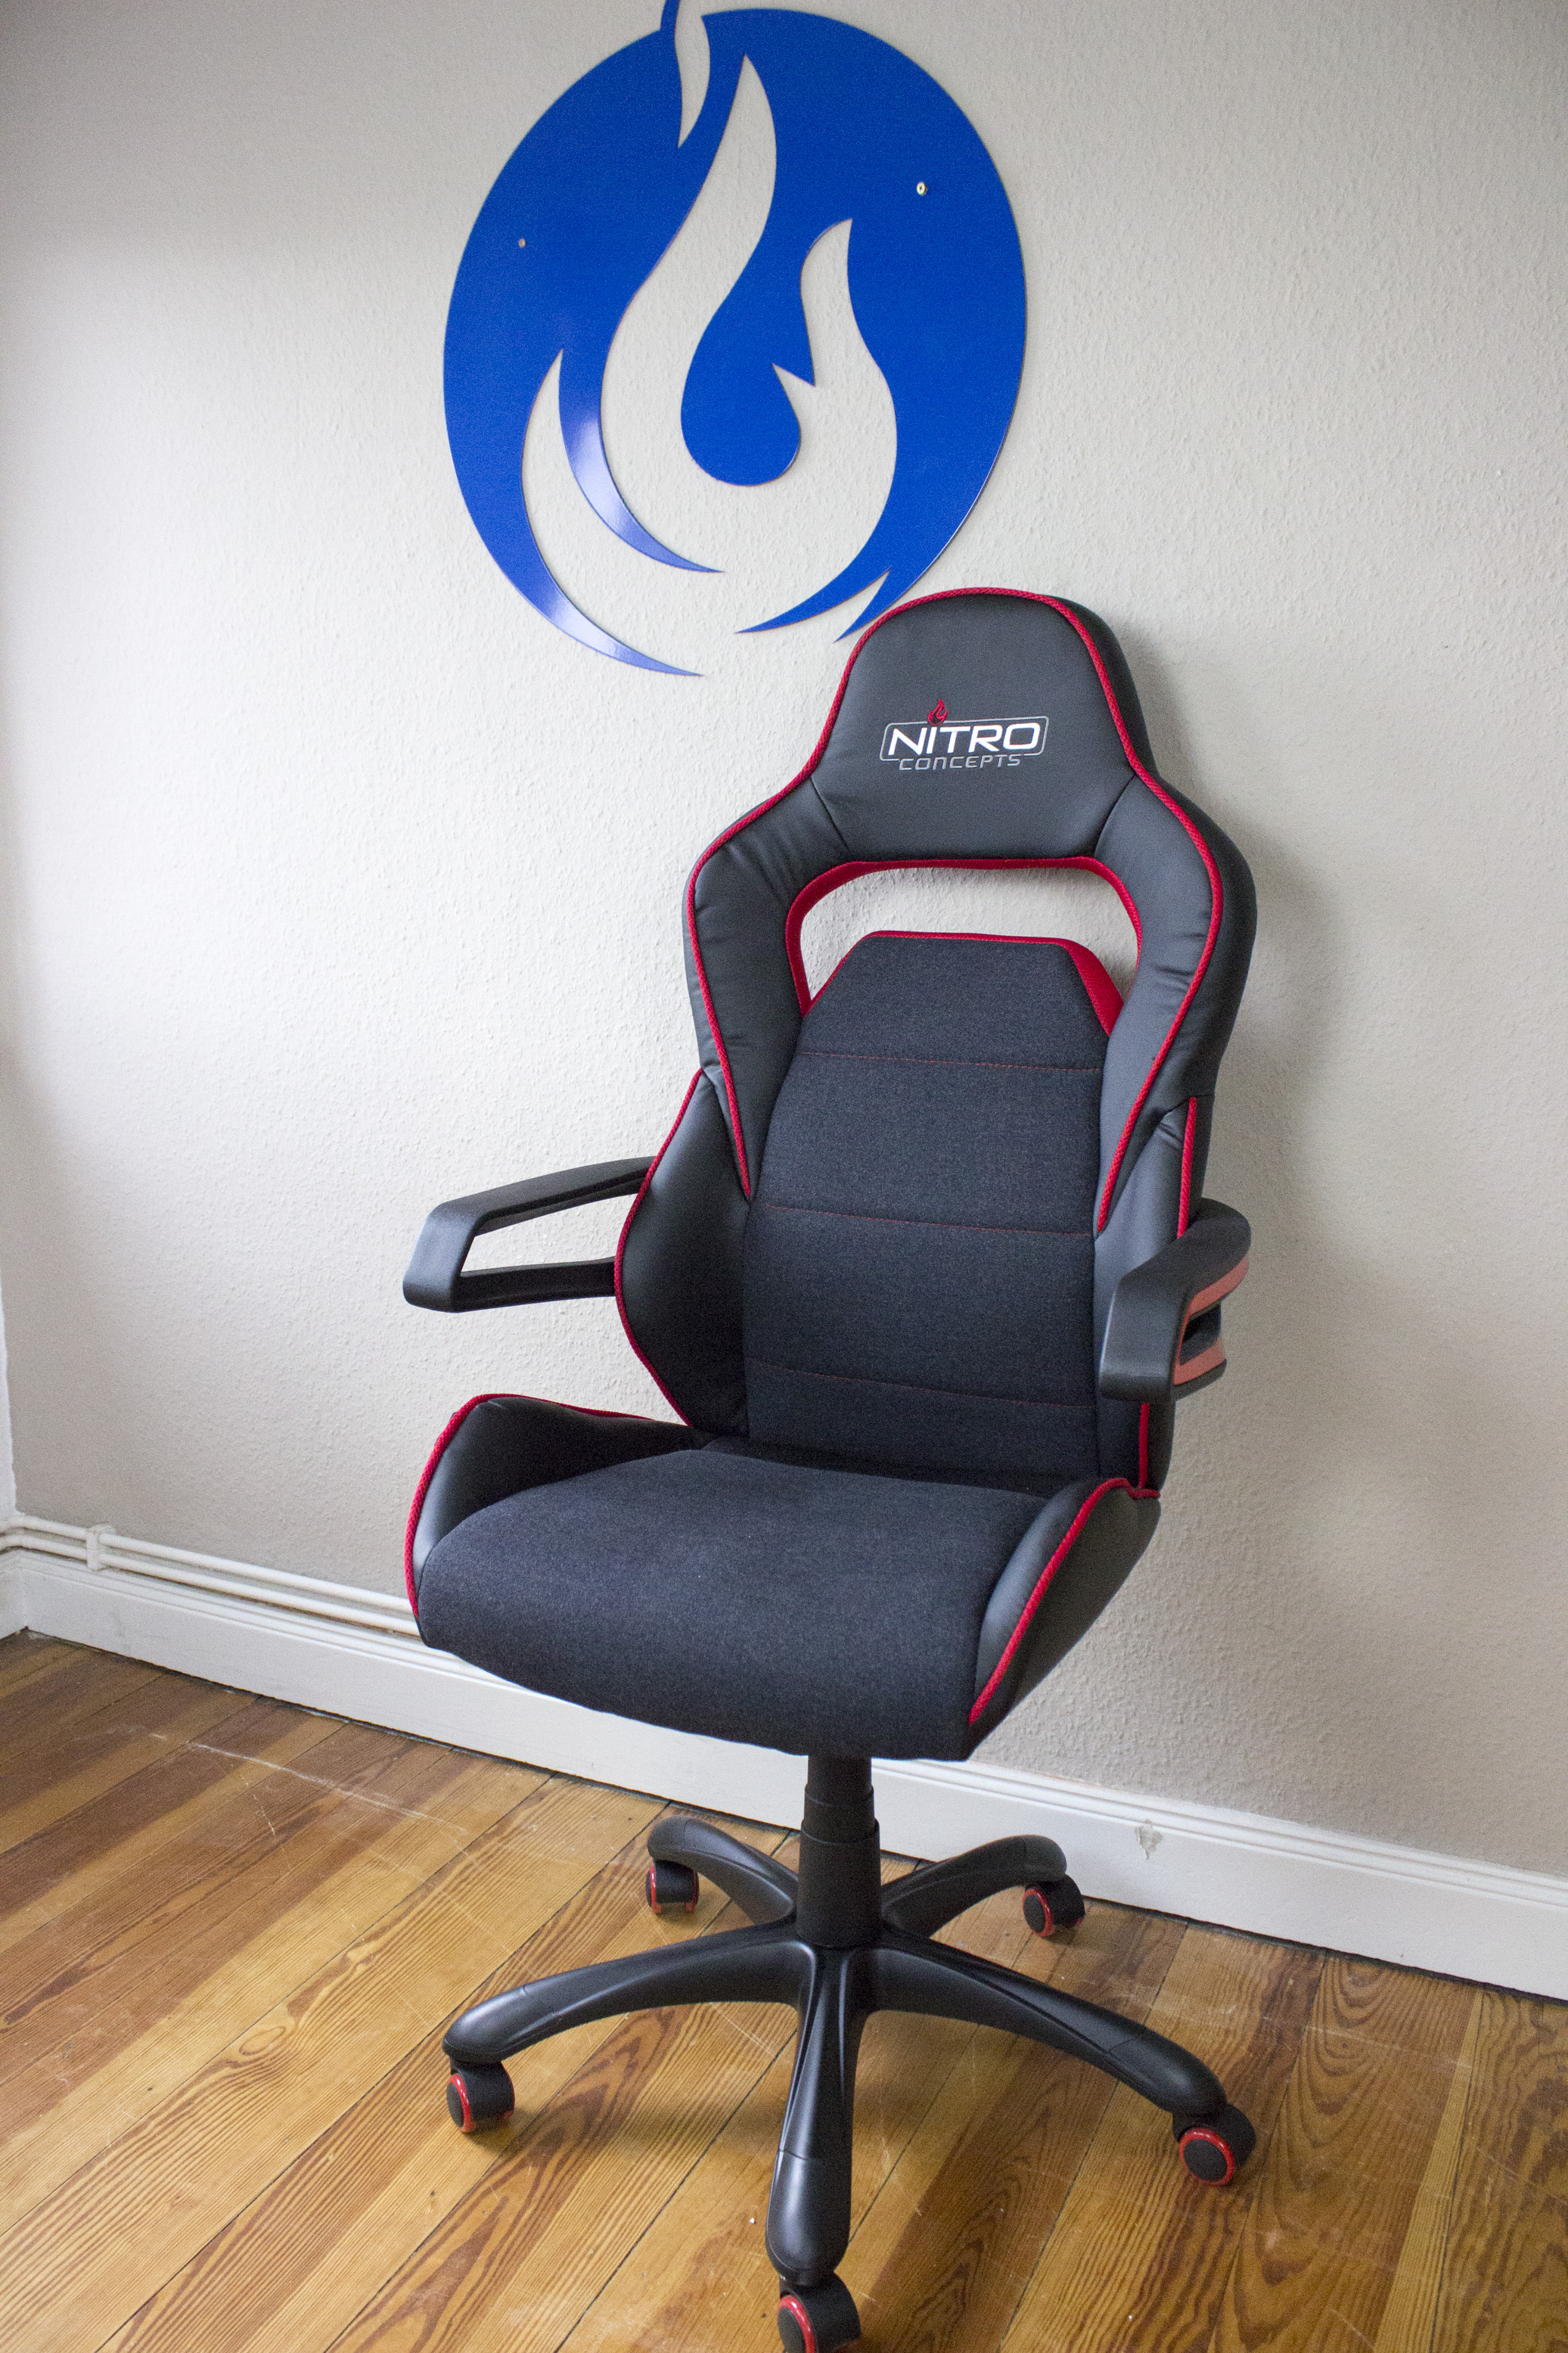 Nitro Concepts E220 Evo Gaming Stuhl im Test